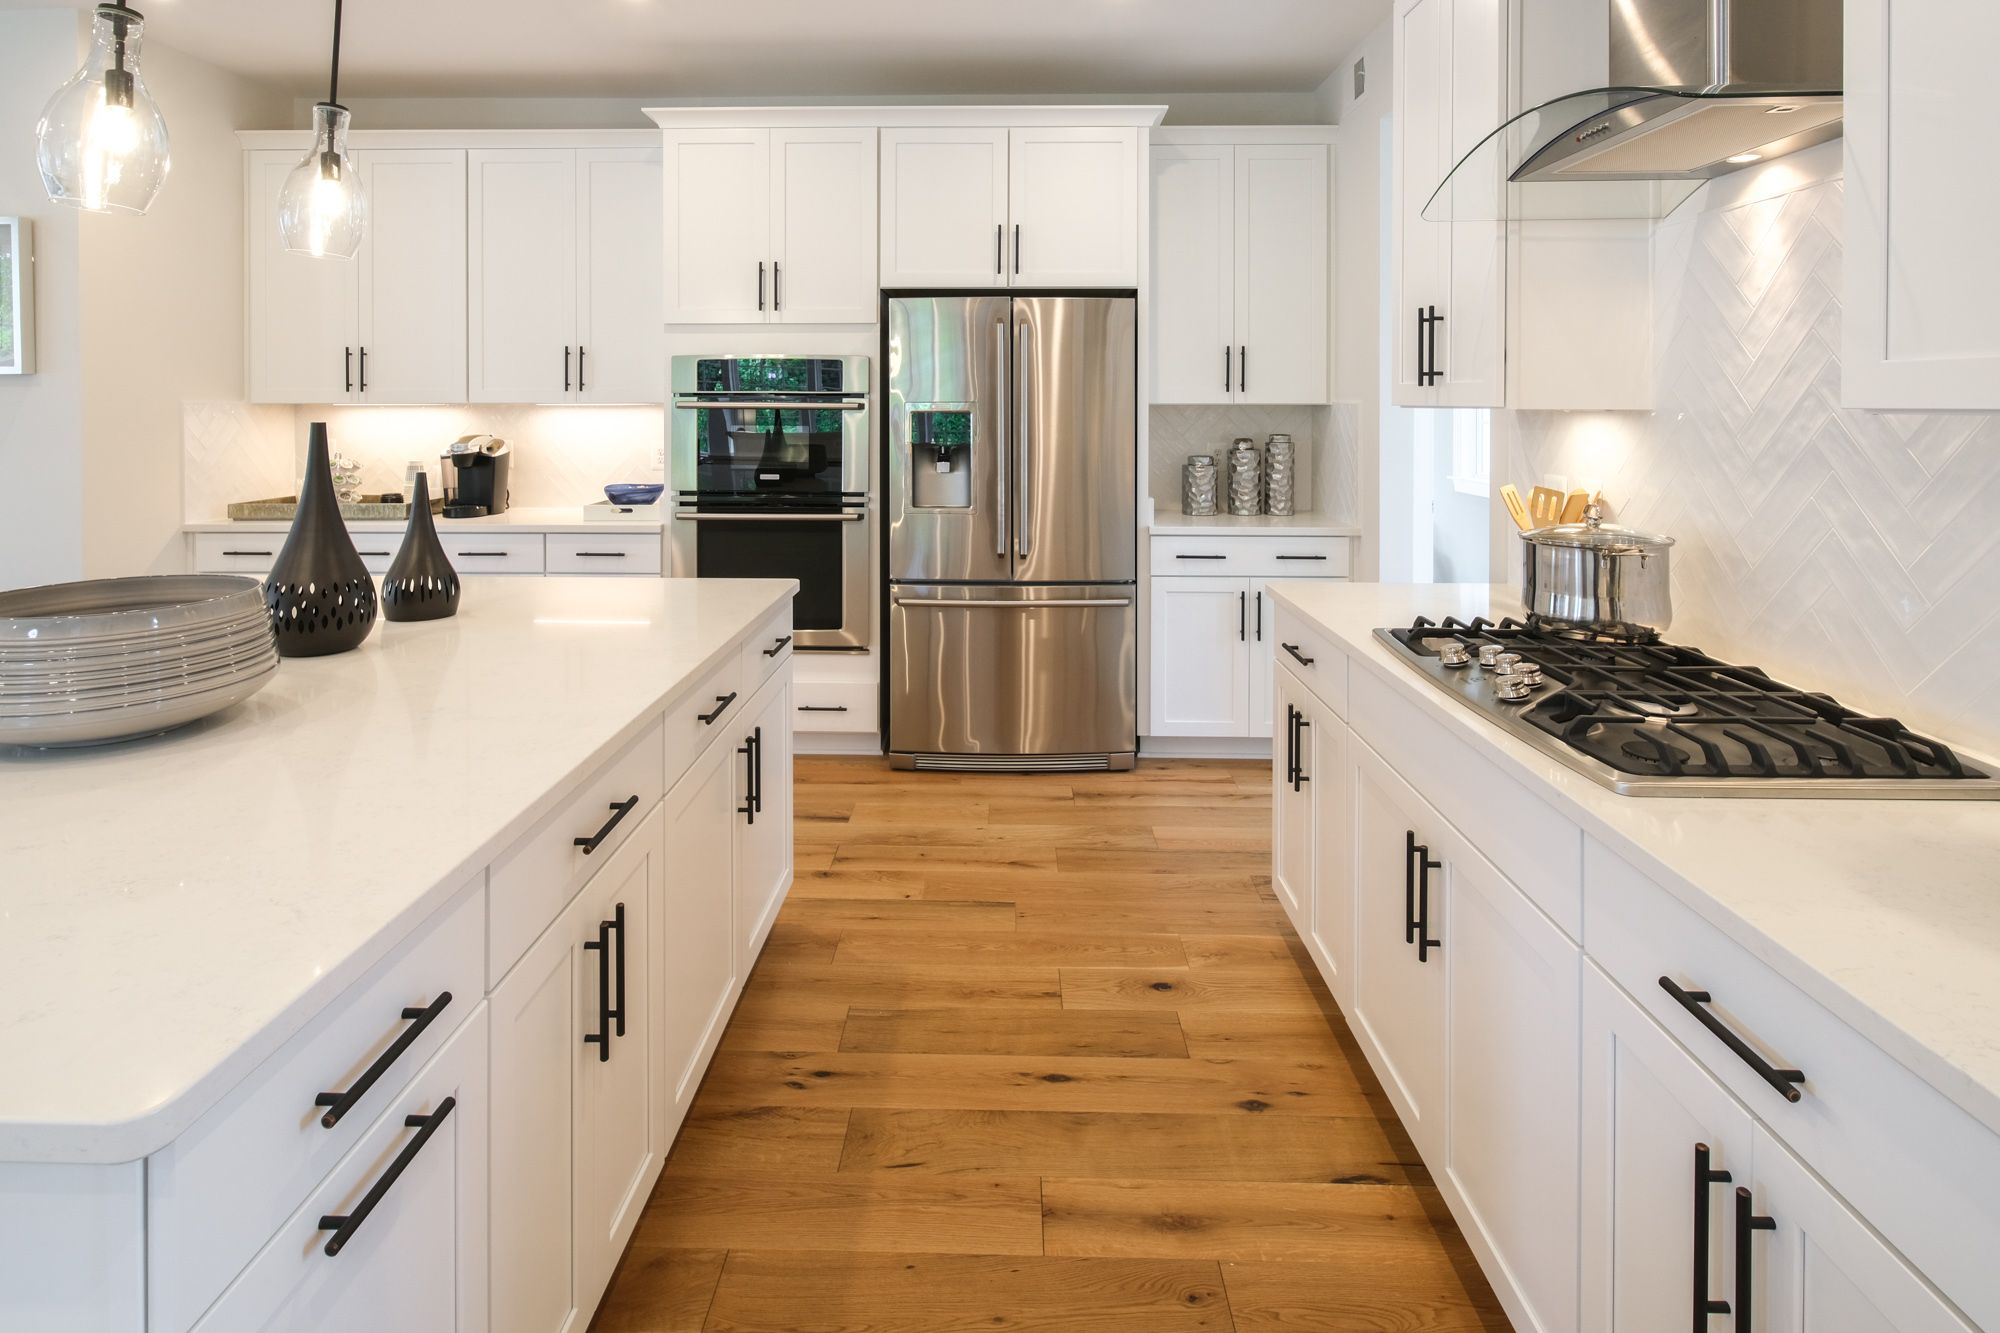 Kitchen featured in the Chatham By Stanley Martin Homes in Washington, MD